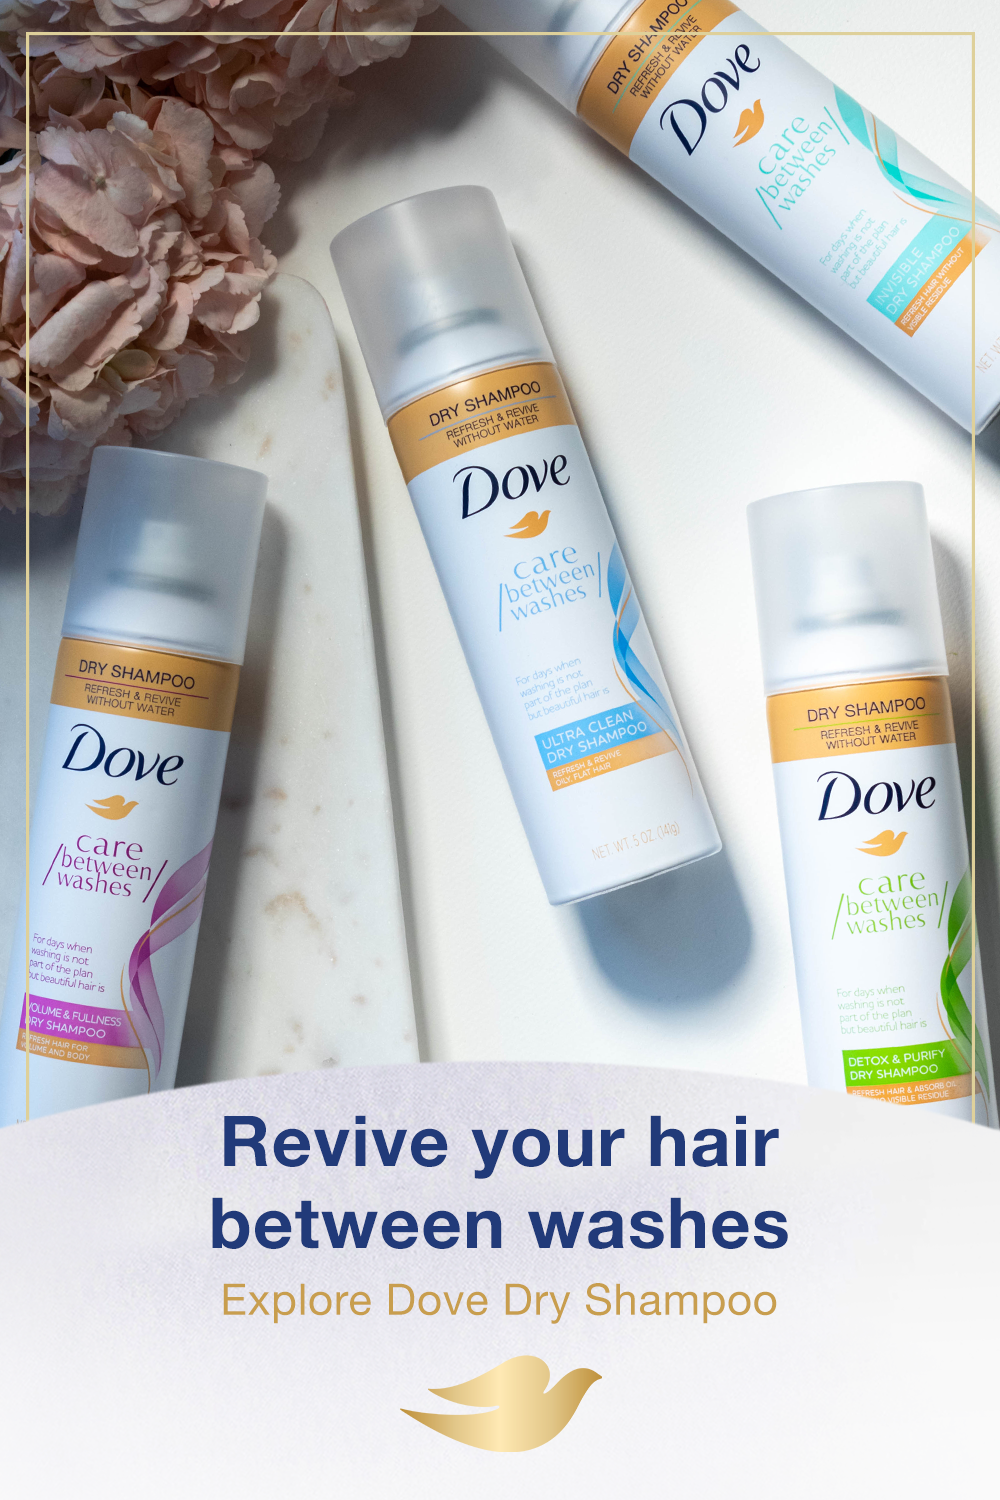 When you don't have time for a full wash with water, Dove